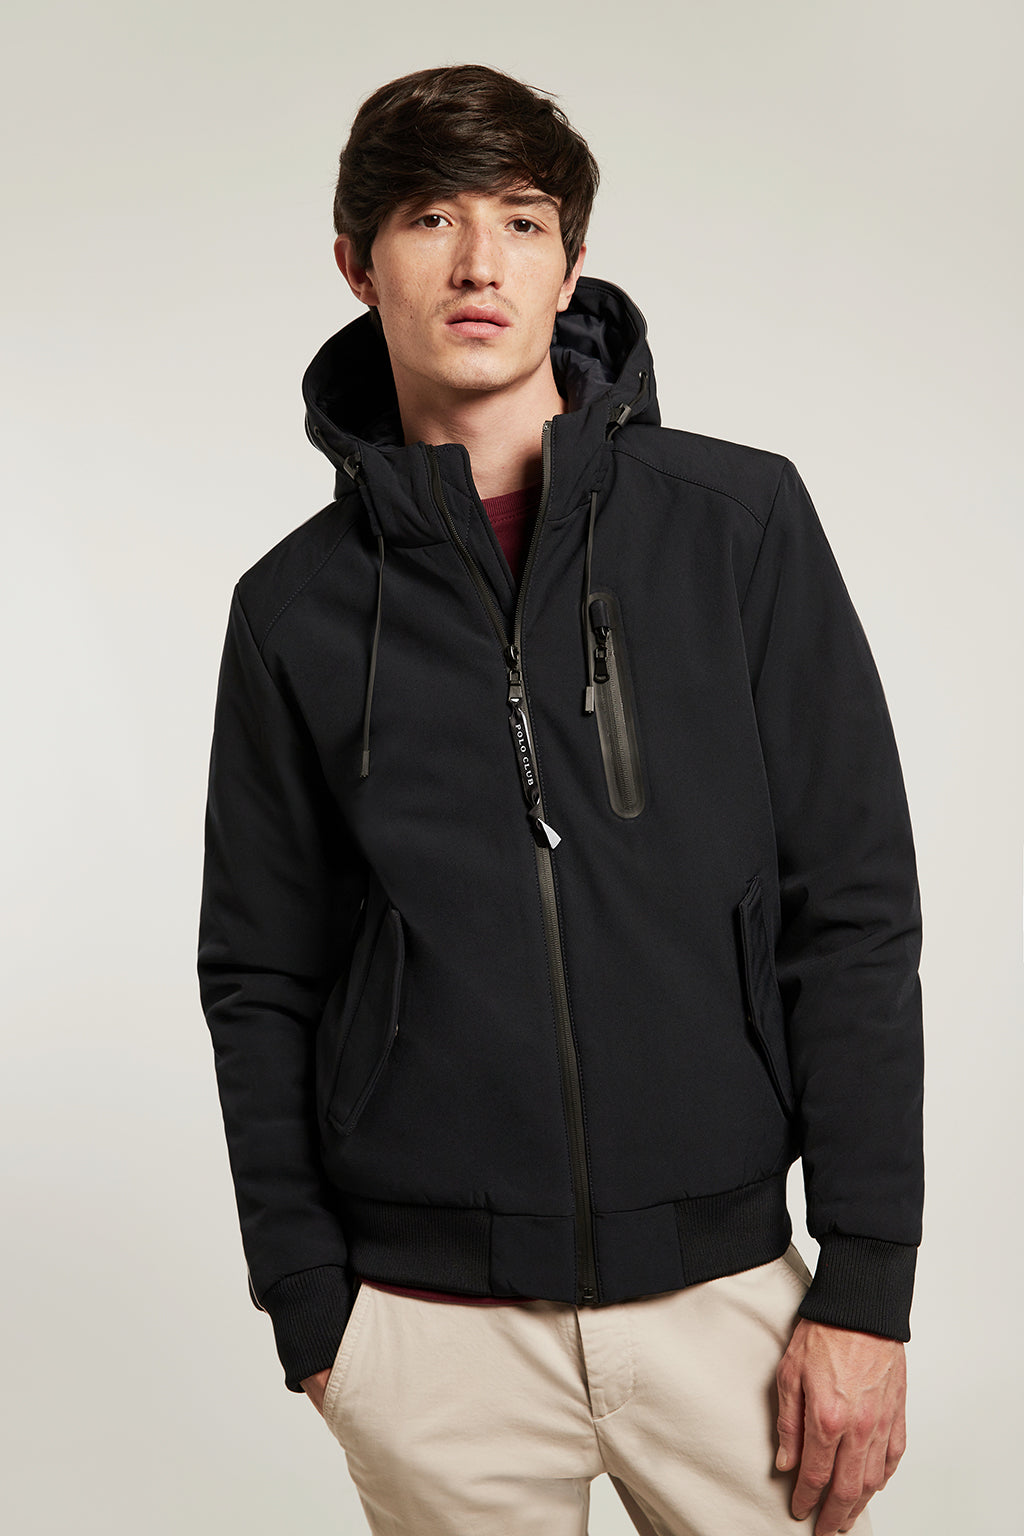 Blue jacket in technical fabric with adjustable hood